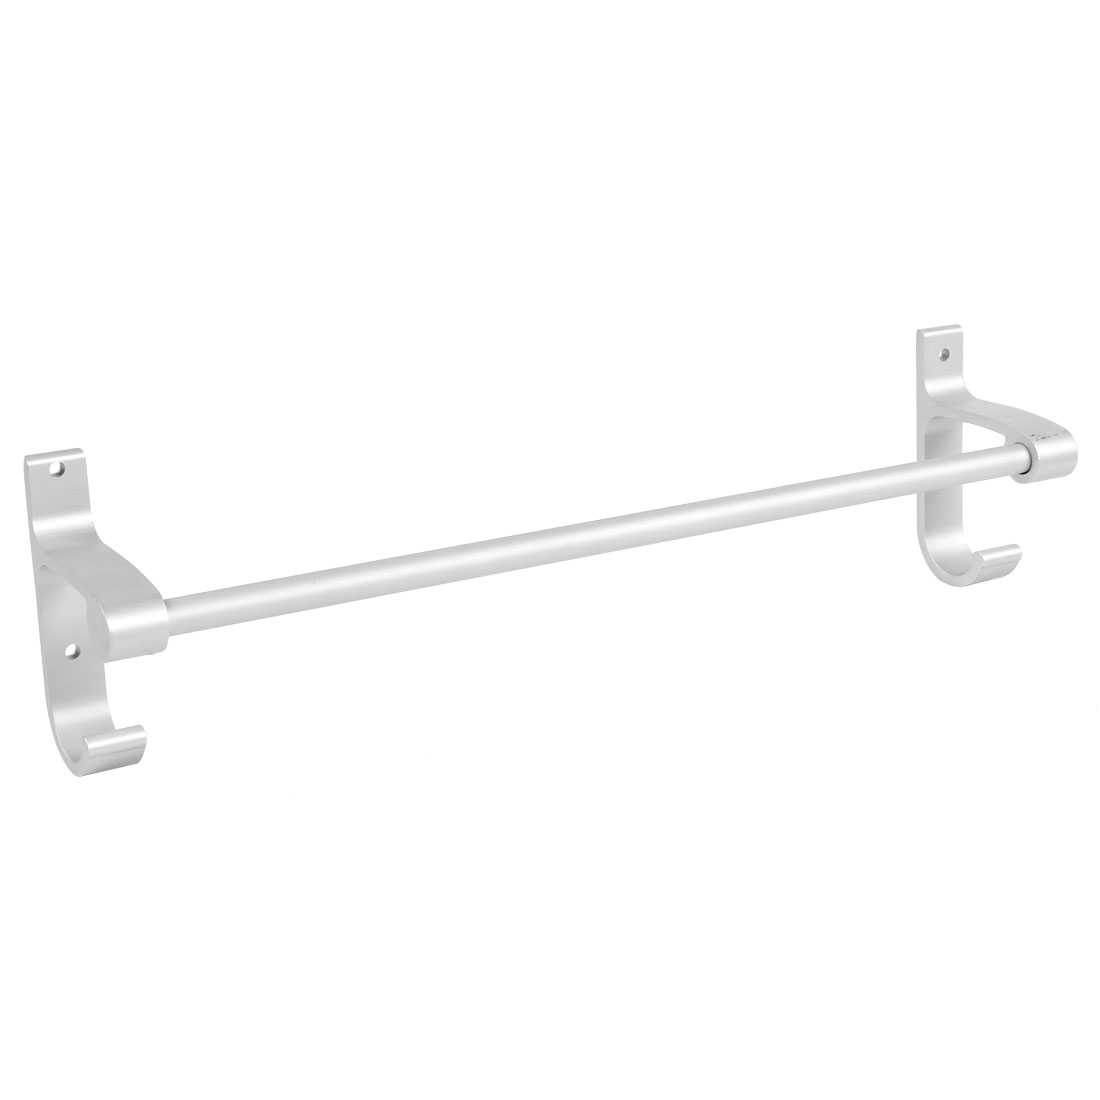 Hotel Home Bathroom Alumimum Wall Mount Single Bar Towel Rack Hanger 40cm Length